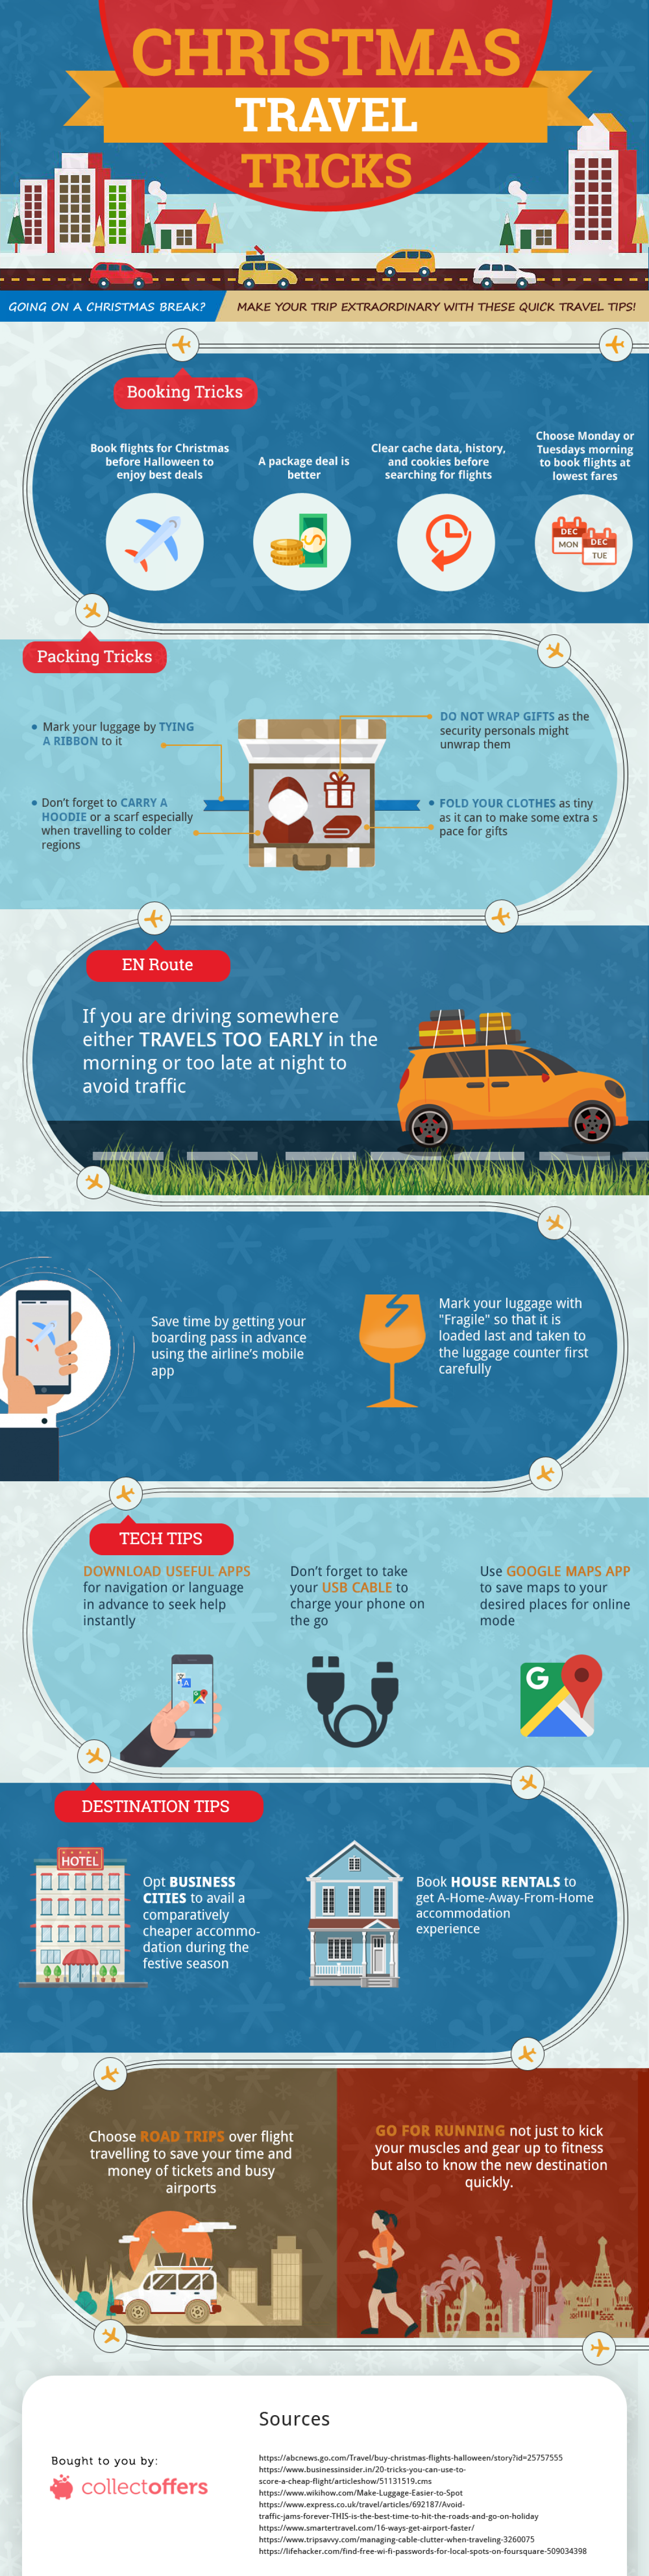 Christmas Holiday Travel Tricks You Should Know! Infographic